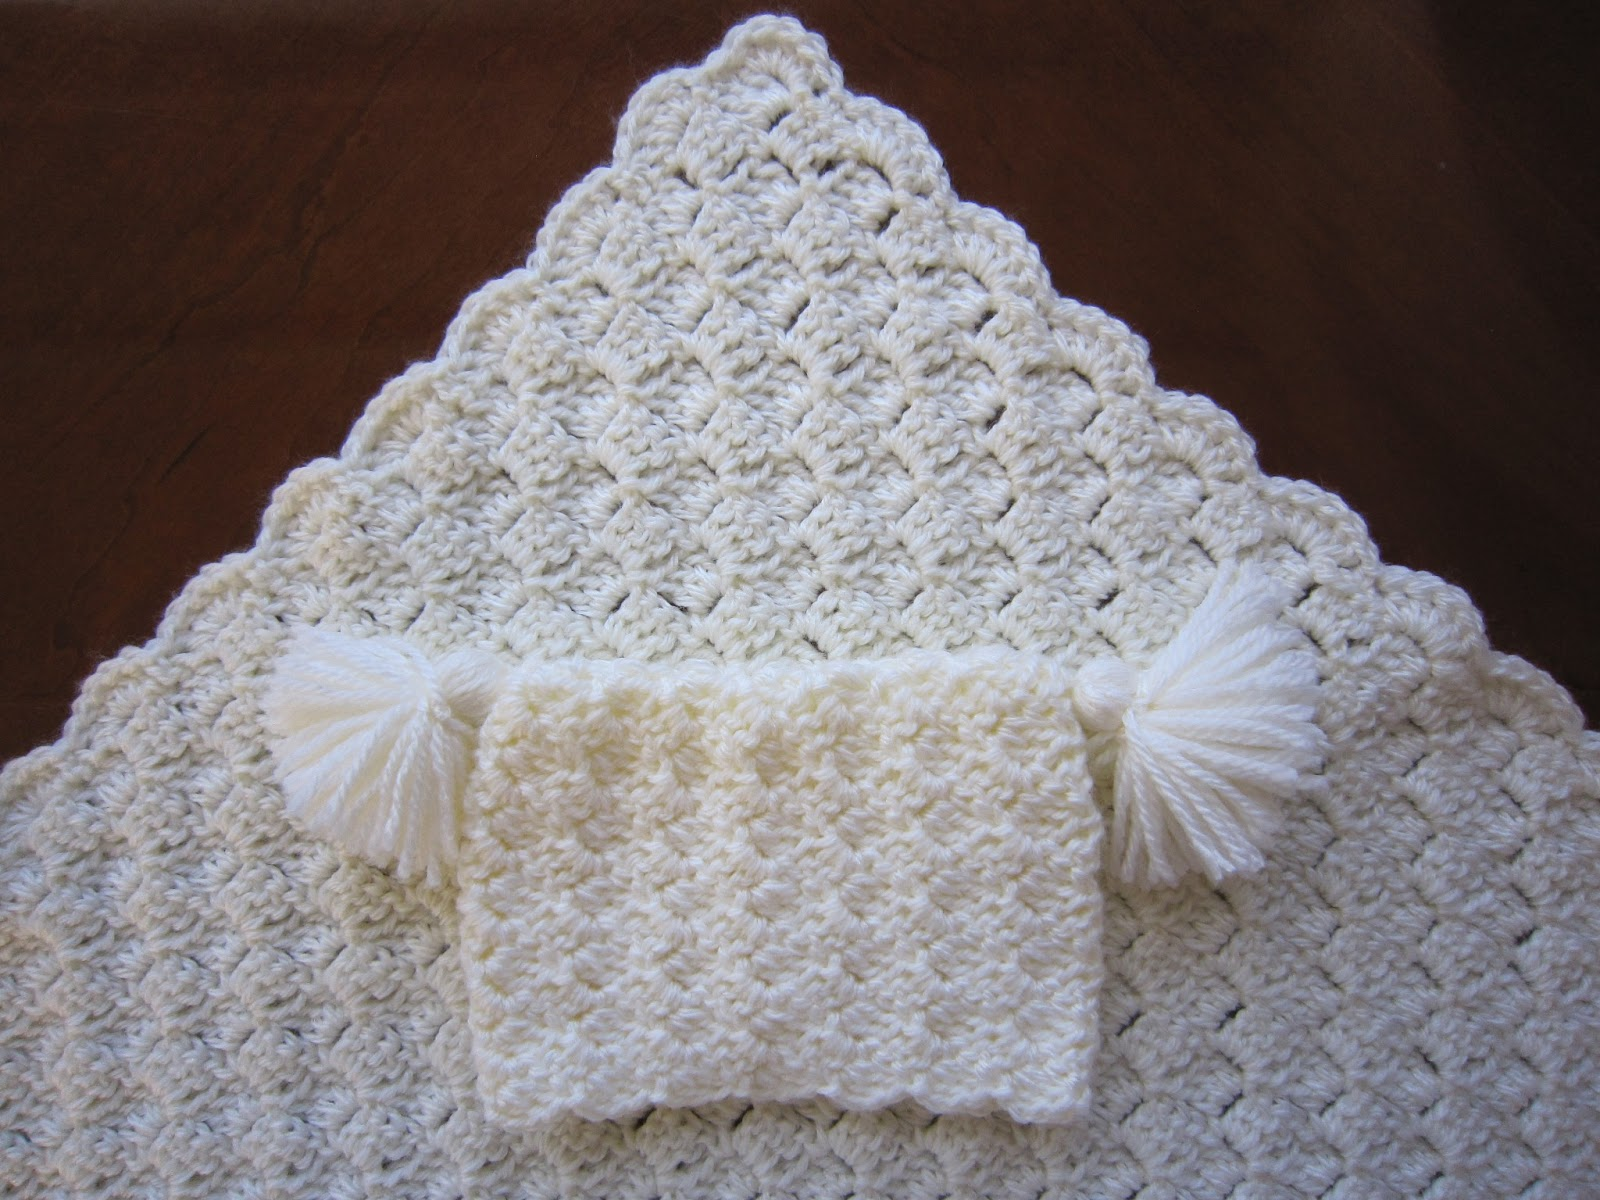 Free Crochet Patterns For Baby Pram Blankets : Sea Trail Grandmas: FREE CROCHET PREEMIE AND NEWBORN ...